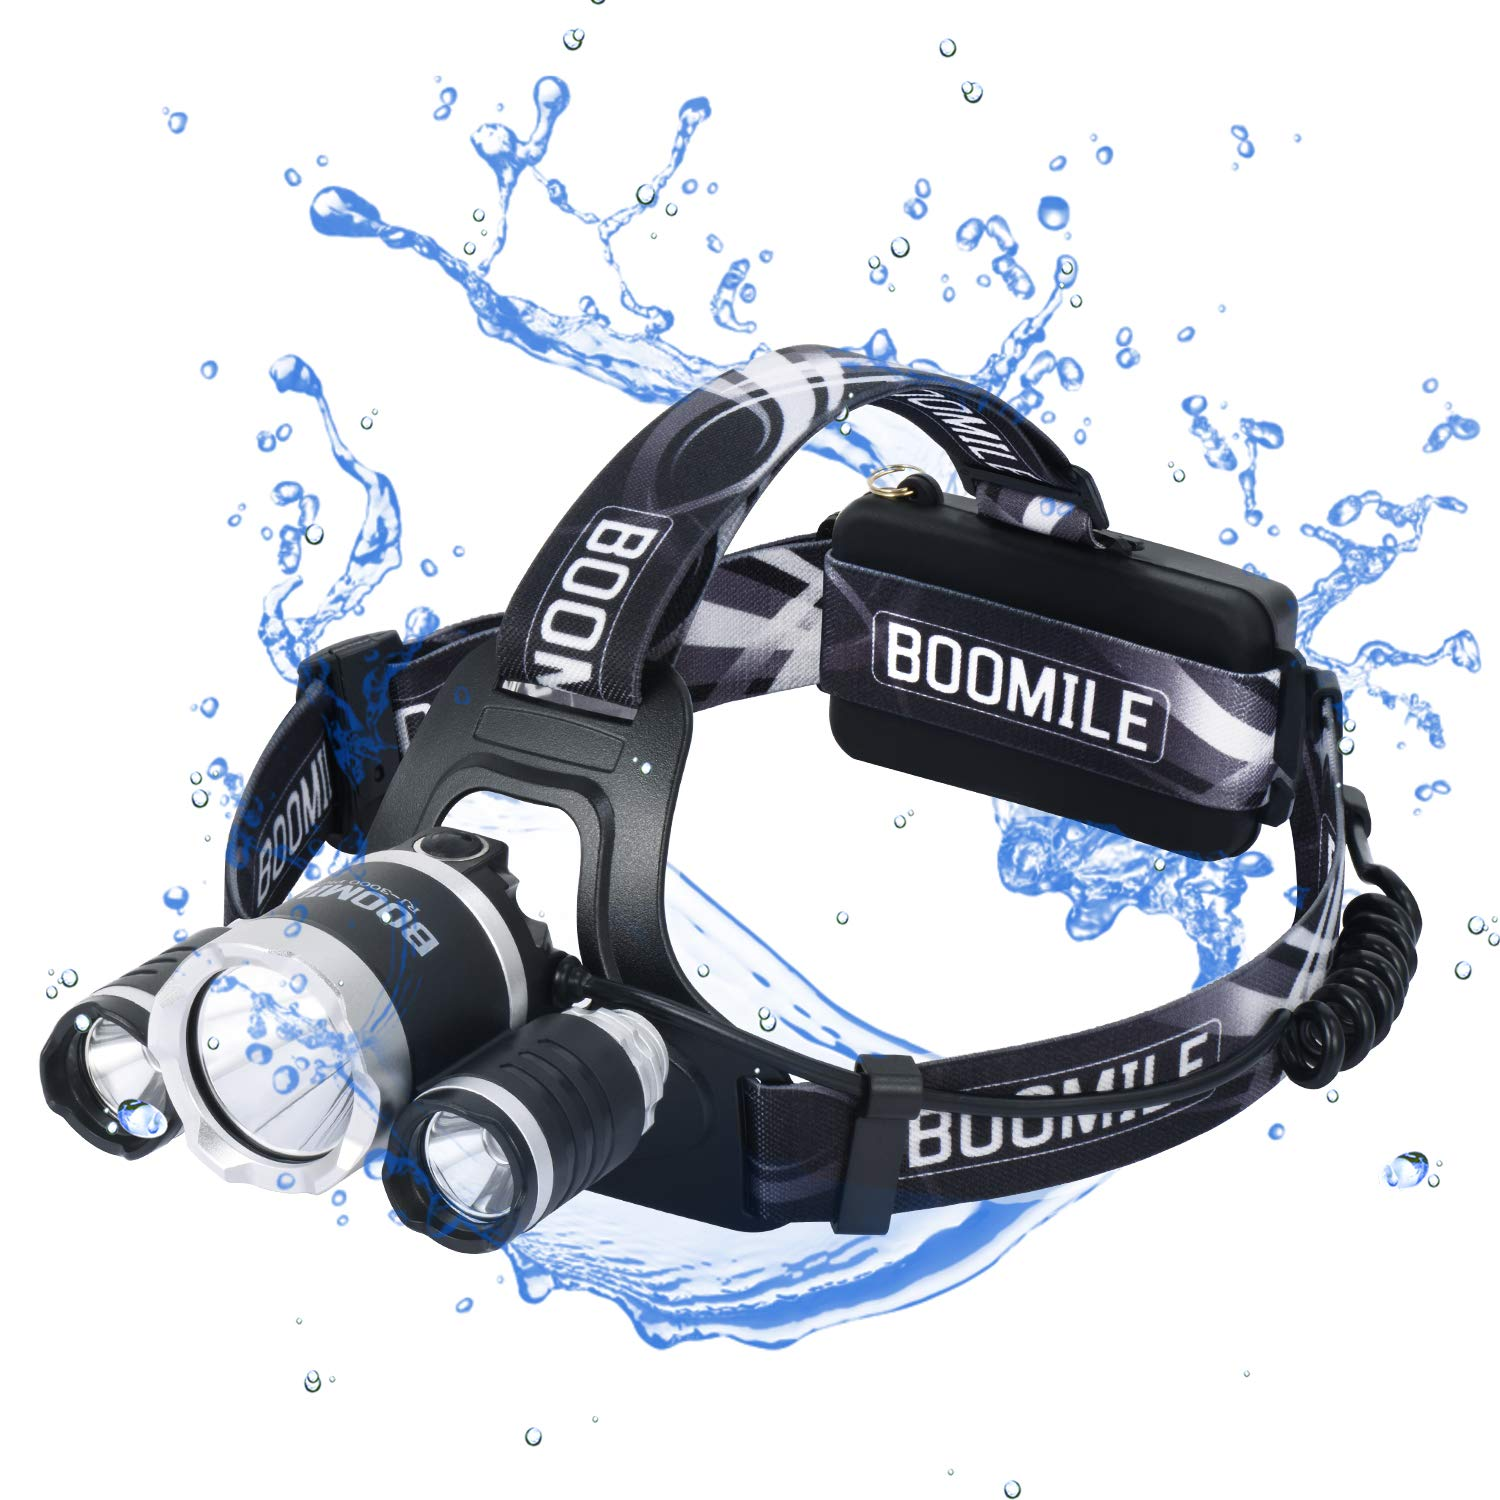 Boomile Headlamp, LED Headlight, Camping, Outdoor Hiking and Walking Black